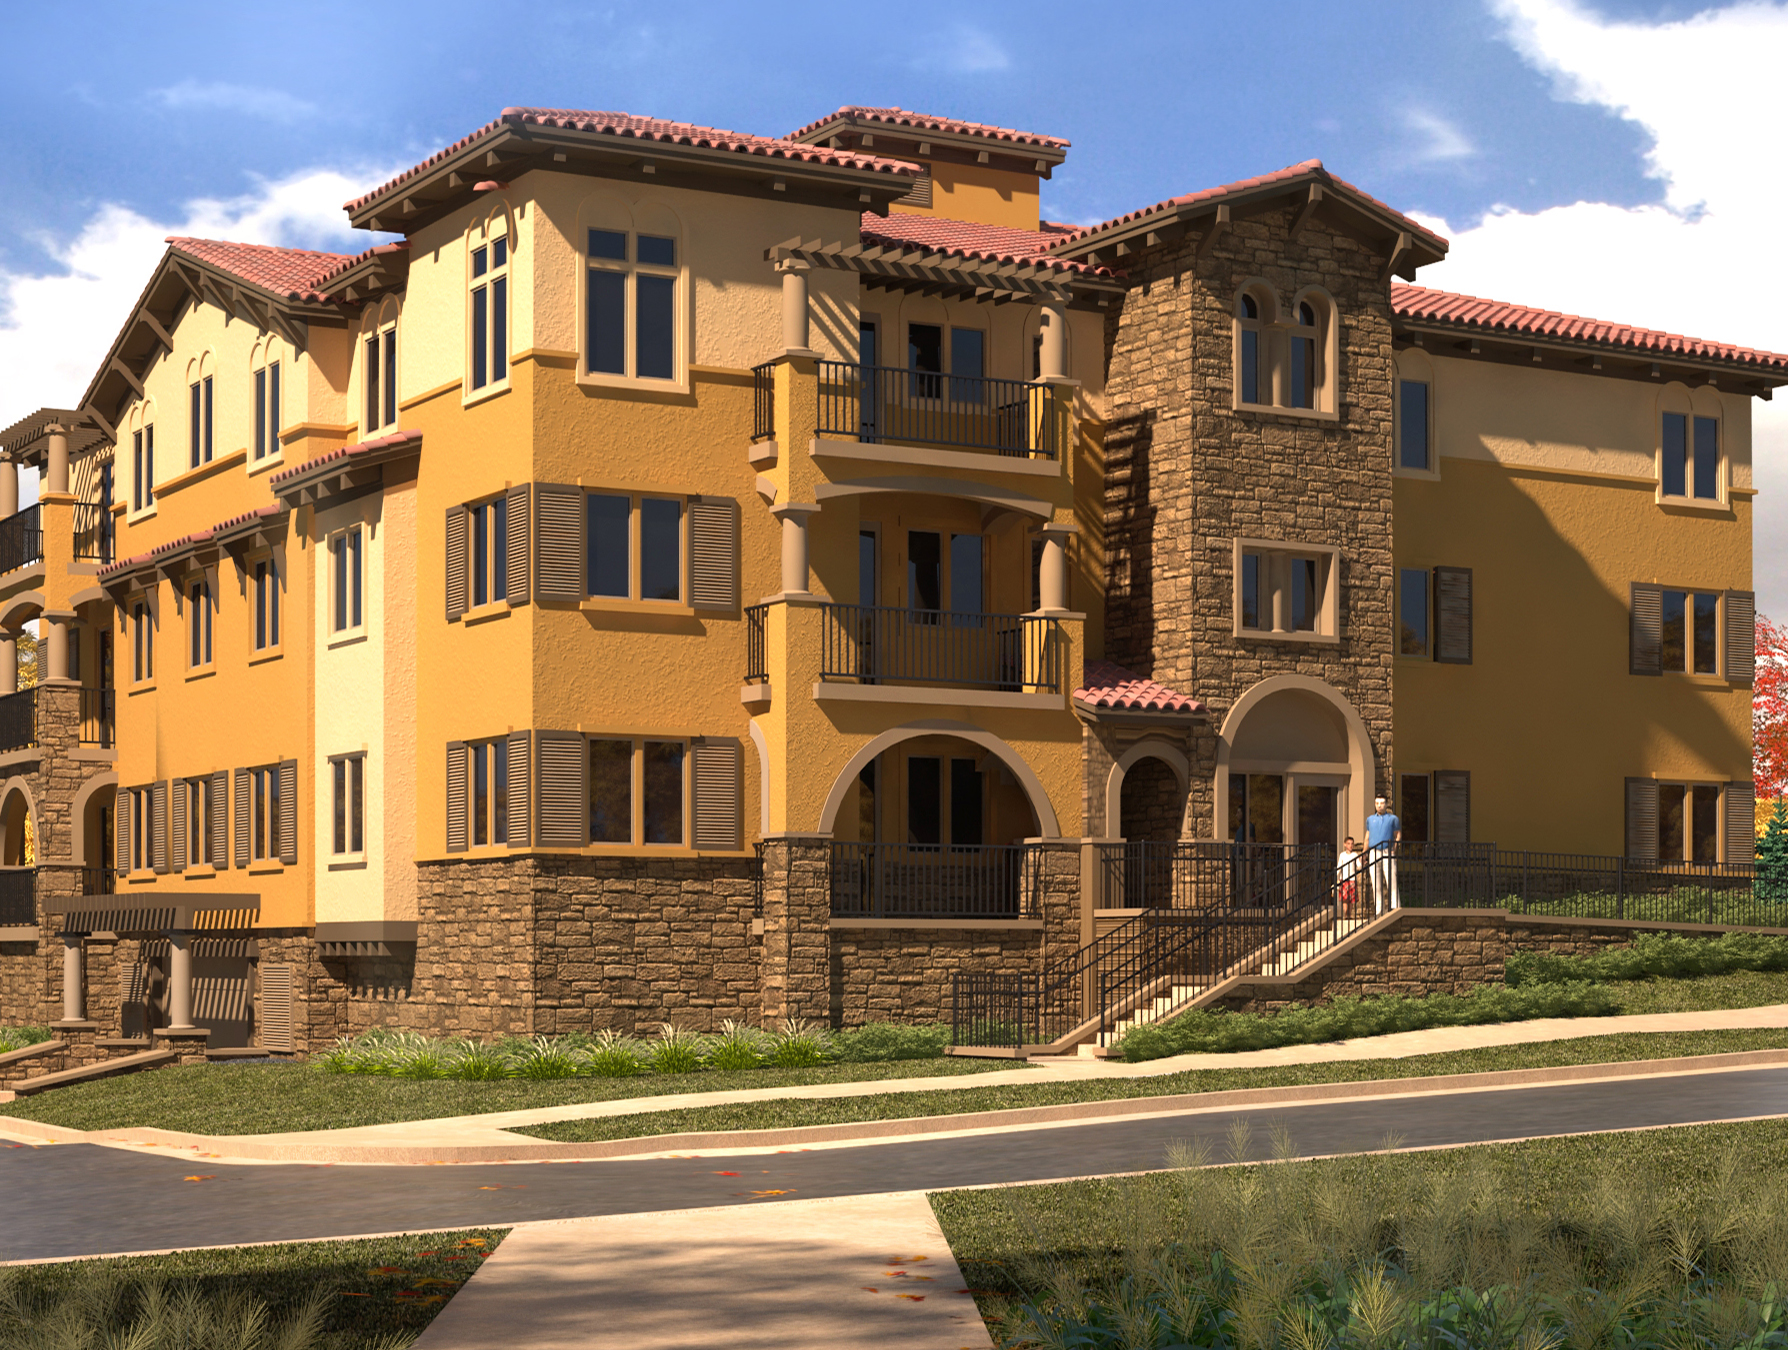 Housing architecture solution provided from an architecture firm located in Colorado